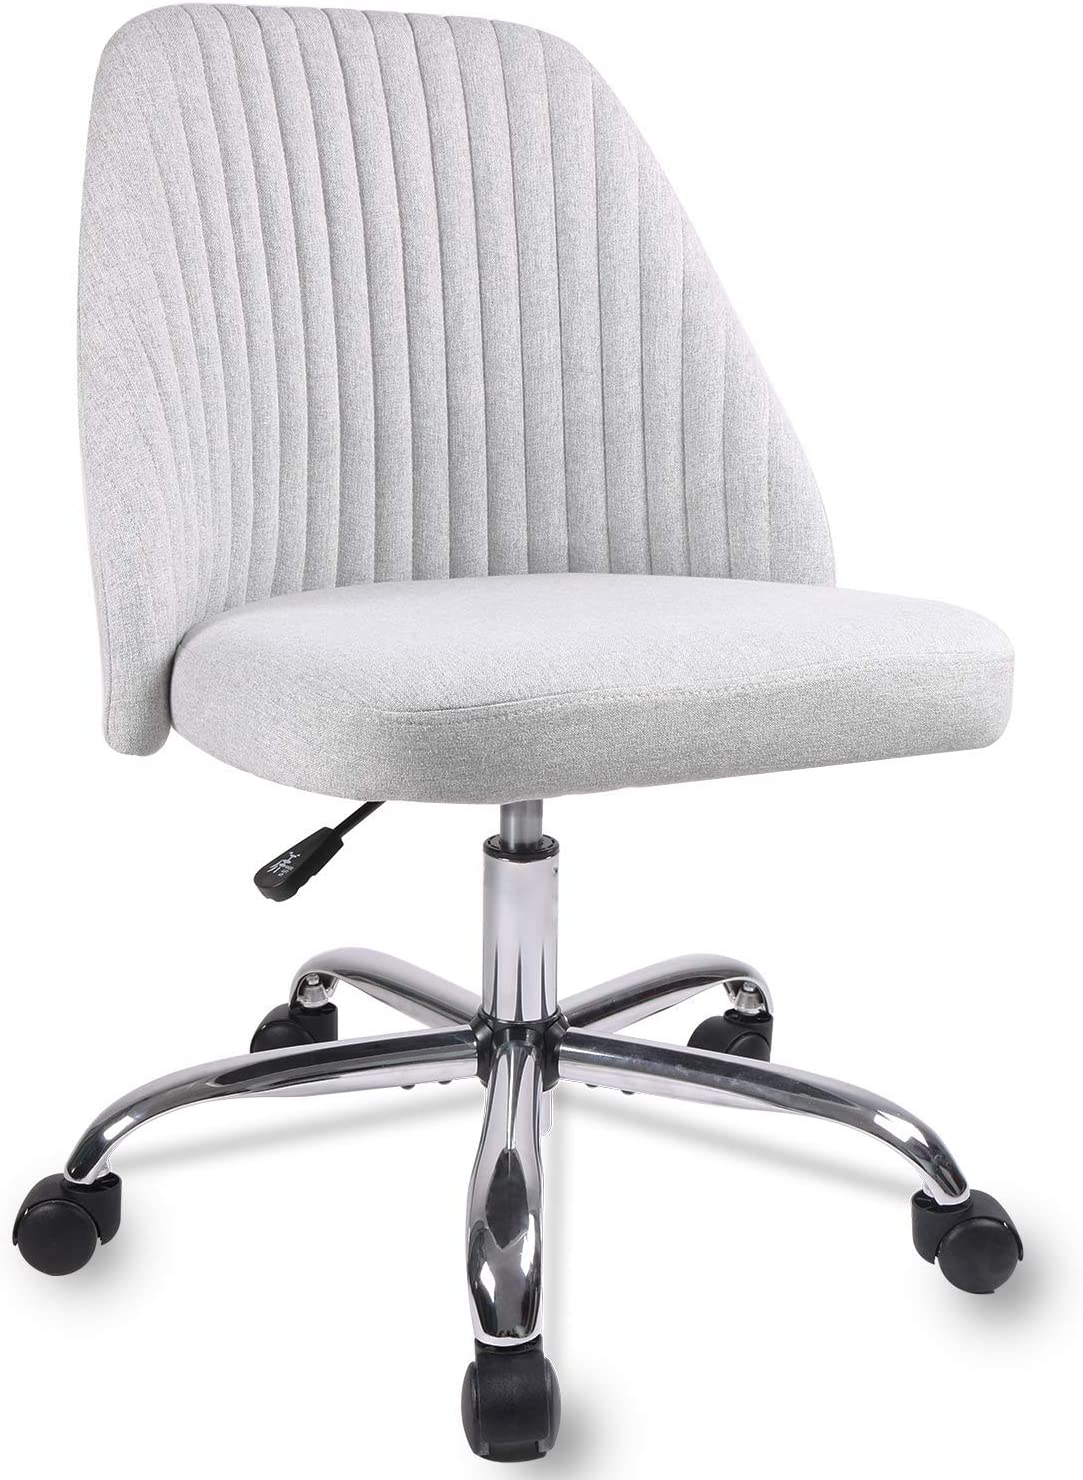 Rimiking Home Office Modern Twill Fabric Adjustable Mid-Back Task Ergonomic Executive Chair, Gray